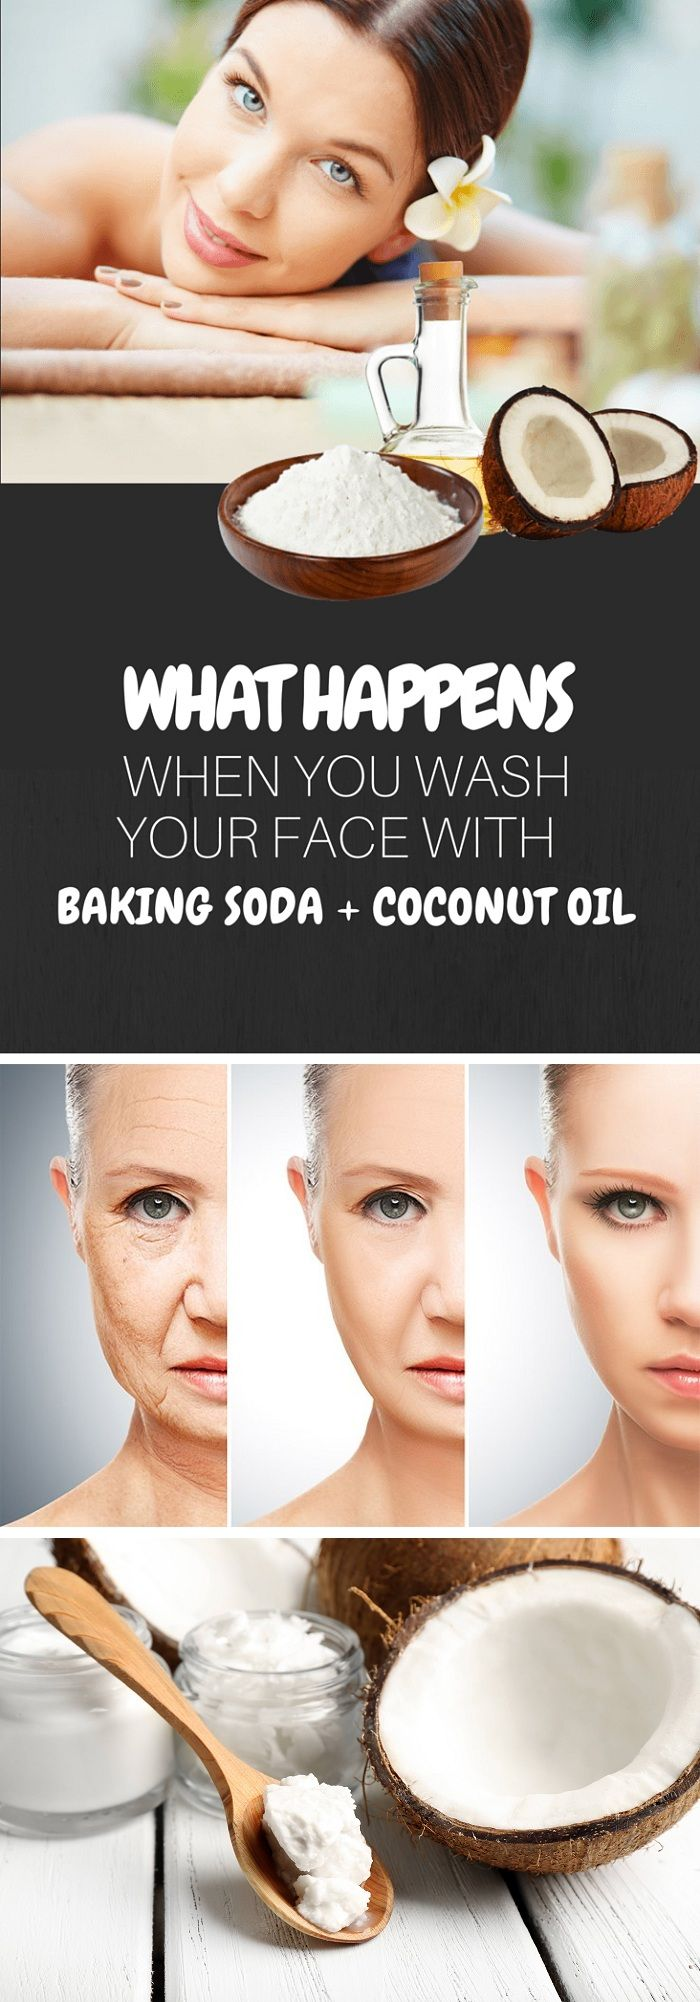 Baking soda and coconut oil face wash, can be very good for washing your face. Exfoliating your skin has become an increasingly popular part of the beauty routine of men and women alike. The idea is that the mild abrasive nature from baking soda and coconut oil removes dead skin cells to create an even …